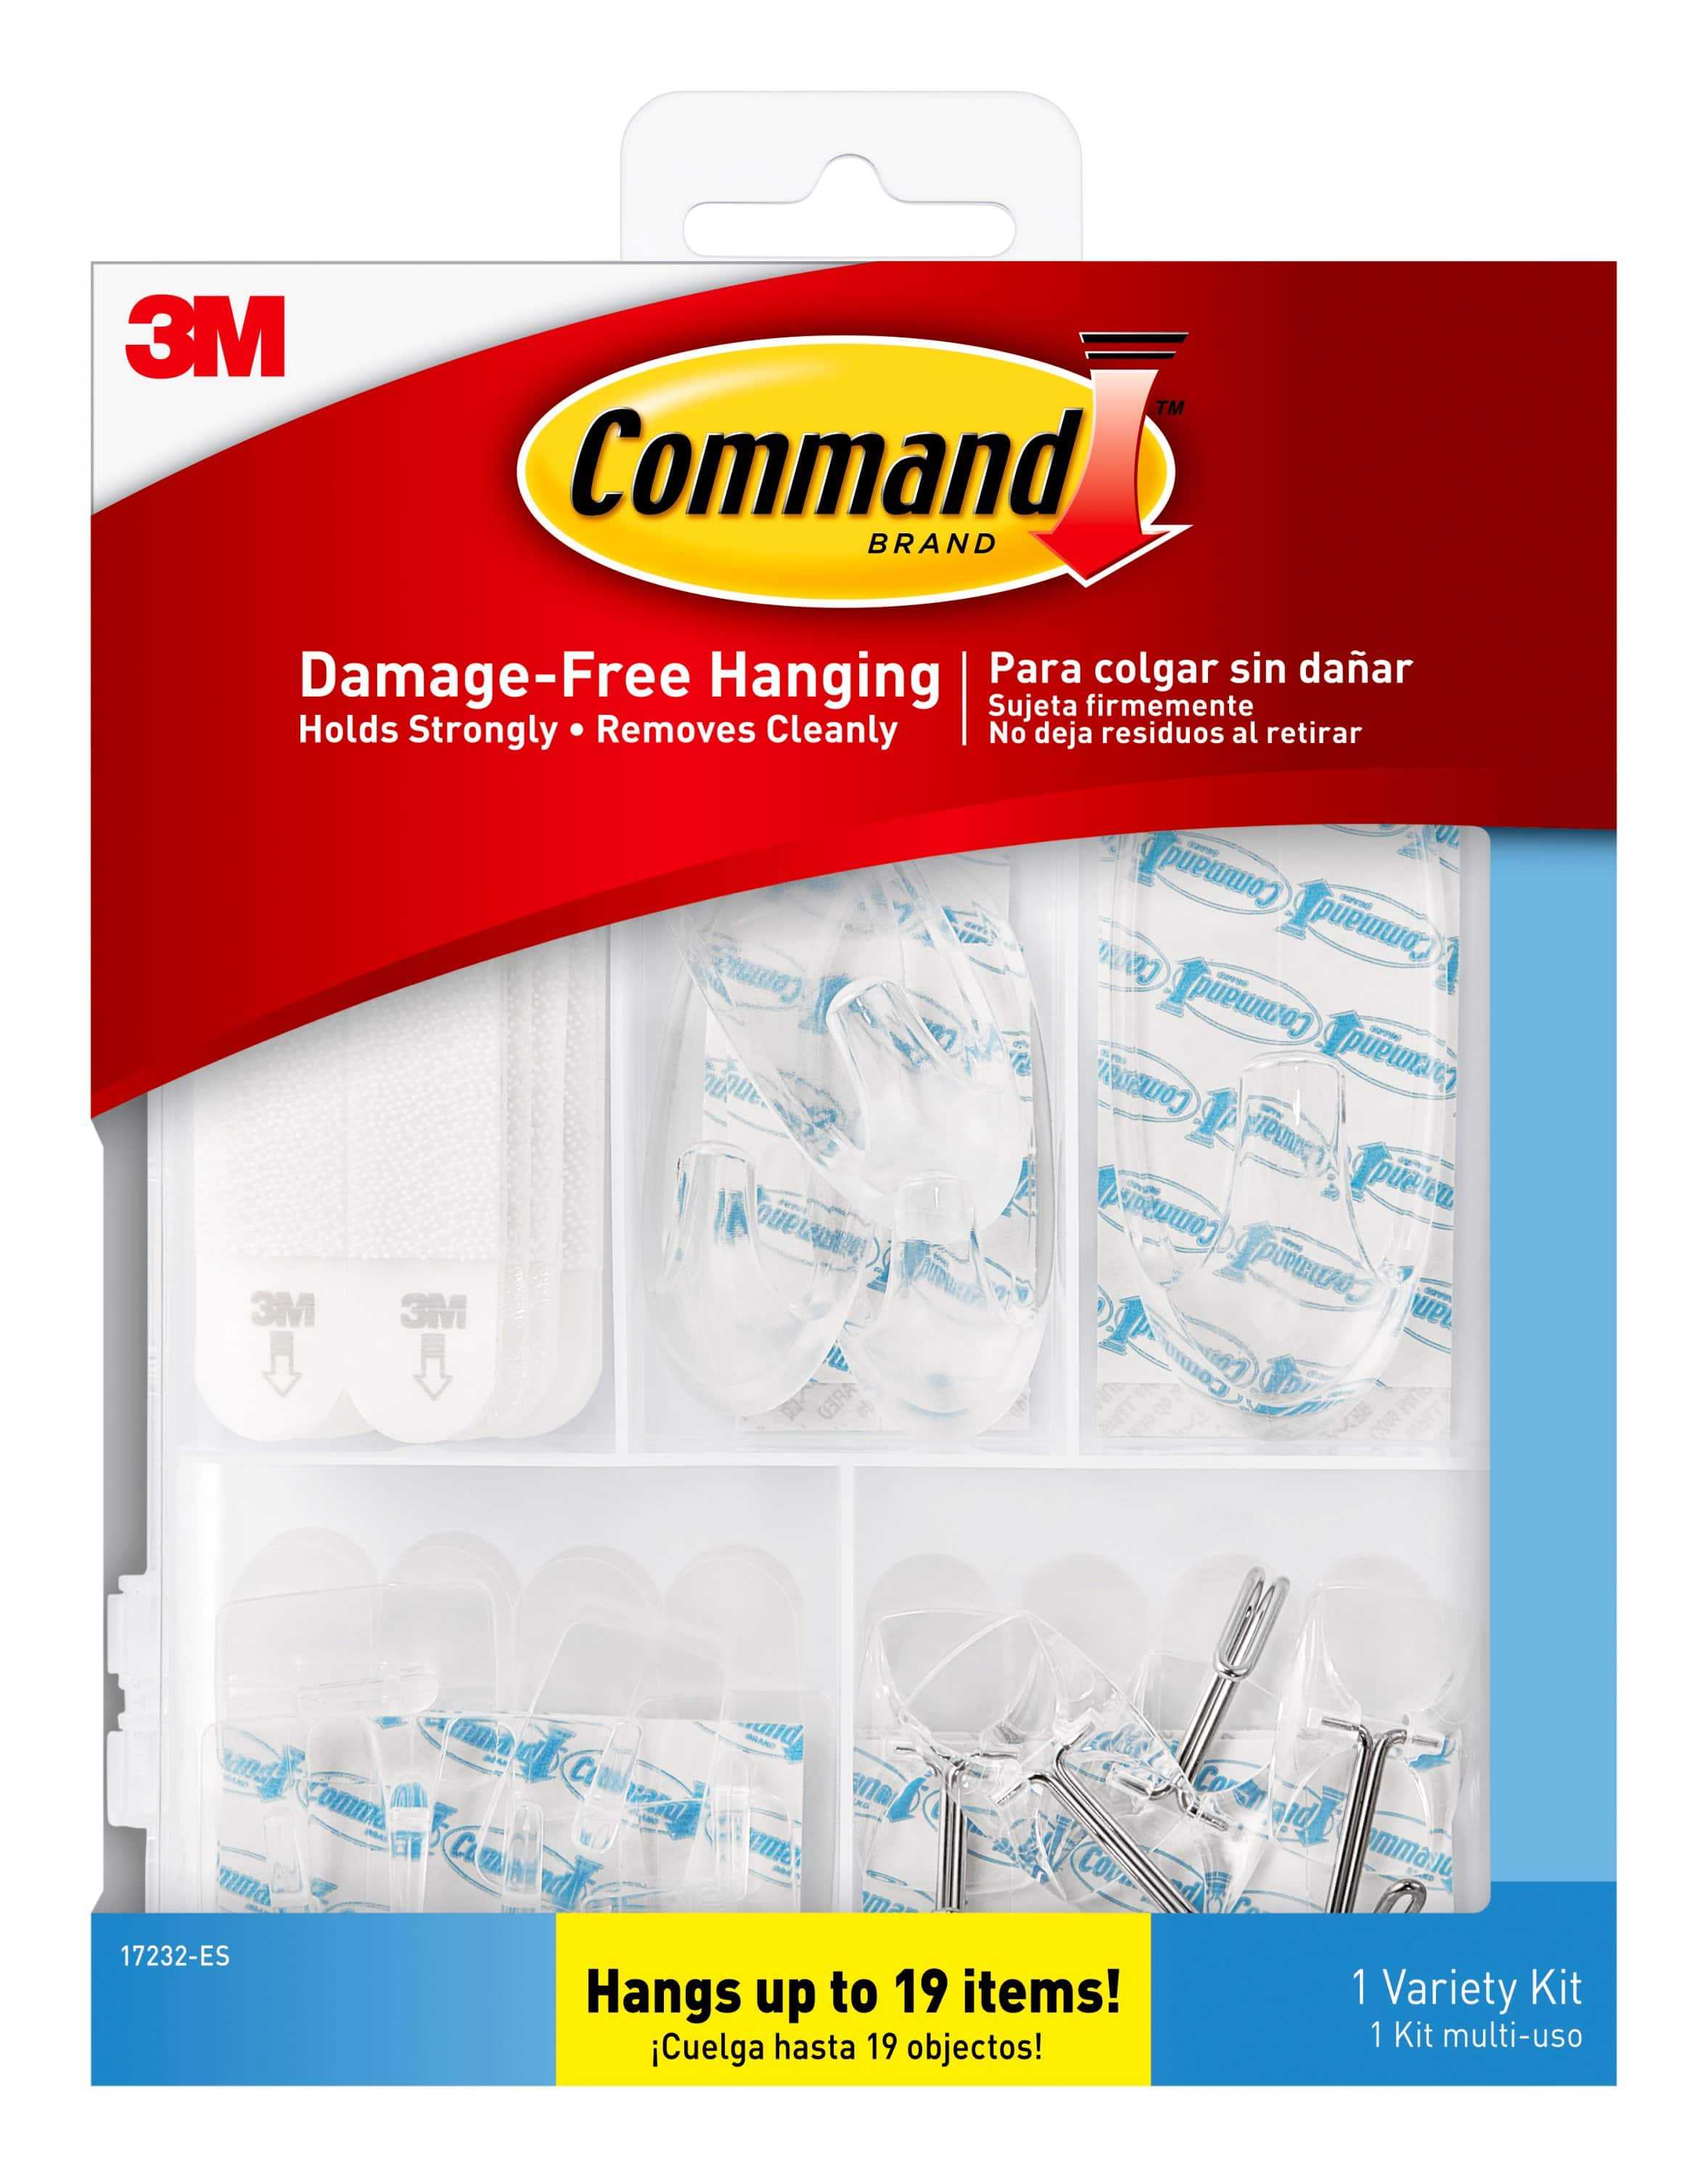 Command Clear Variety Kit, 53 pieces, Hangs up to 15 items at Walmart B&M YMMV $5